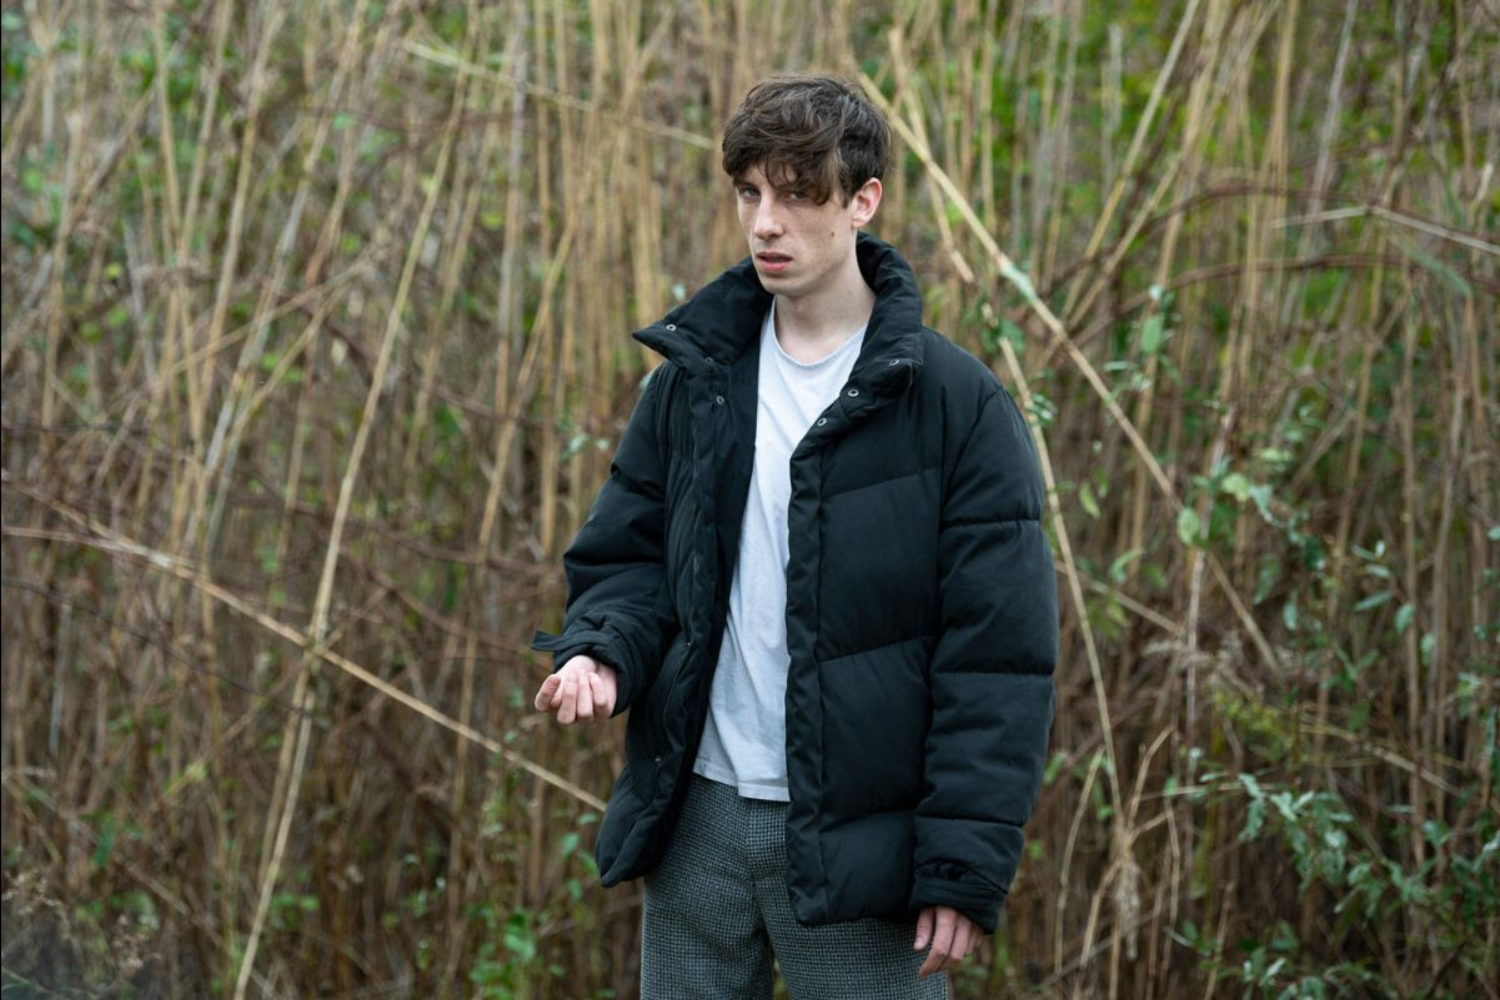 Wicca Phase Springs Eternal offers up video for 'Just One Thing'